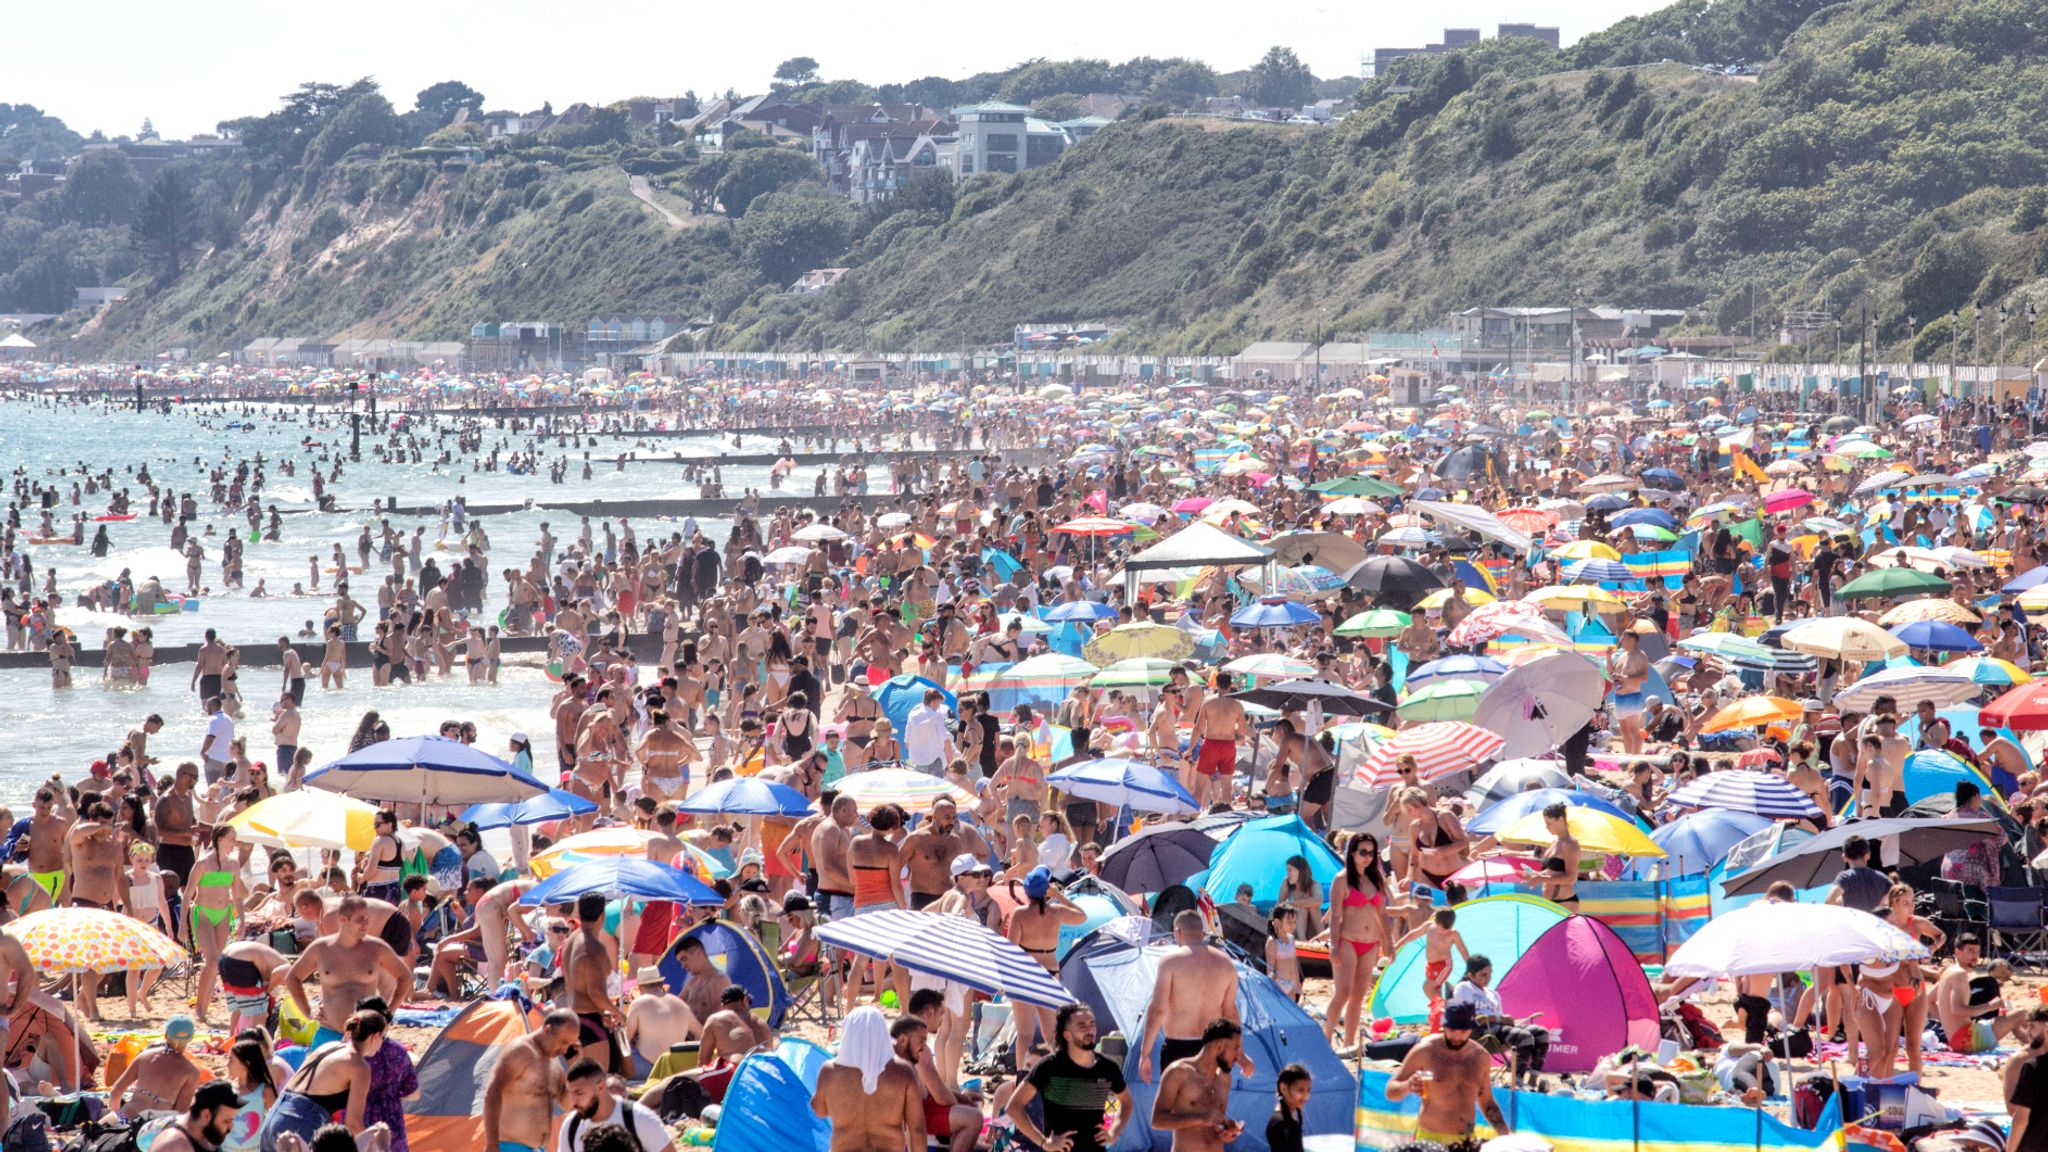 Coronavirus 'still out there': PM condemns people 'taking too many liberties' after crowded beach scenes